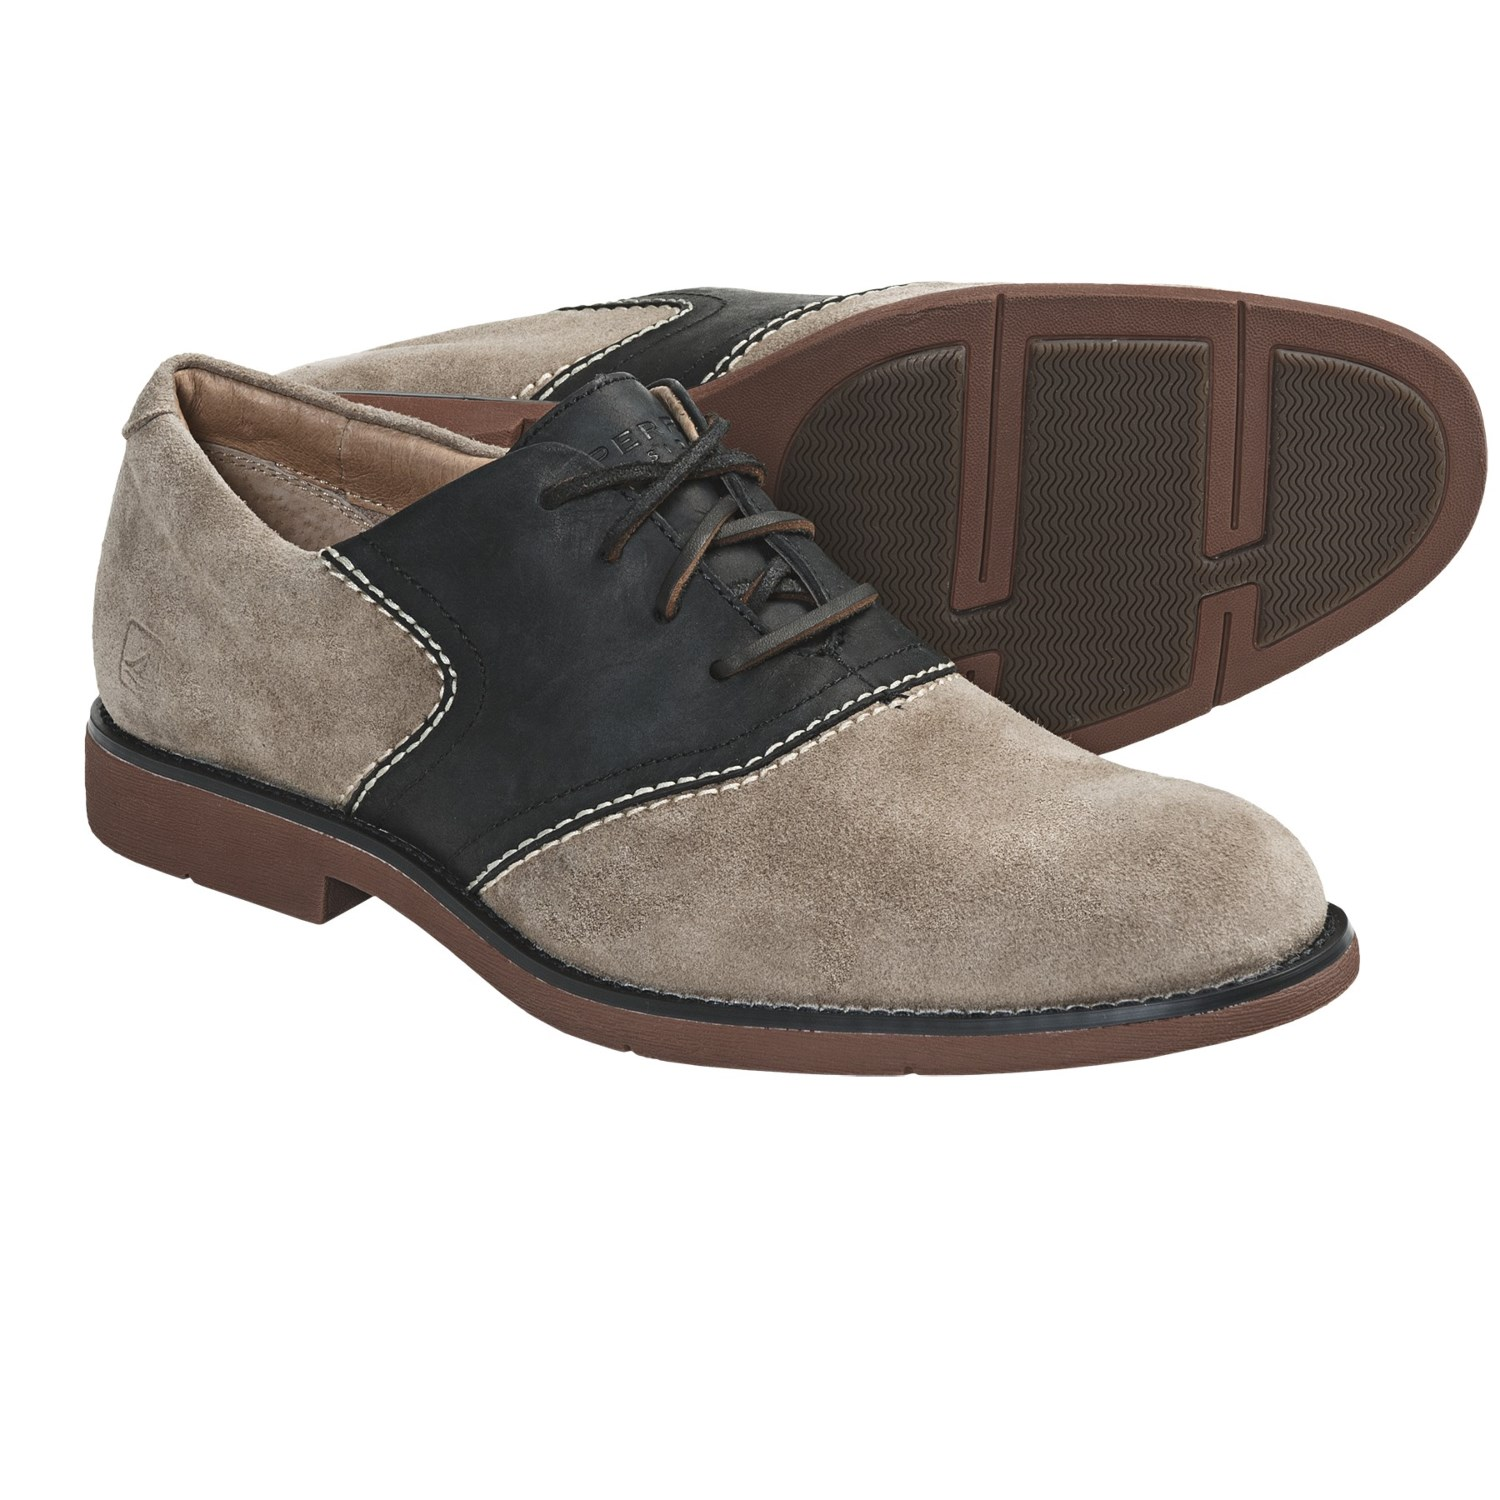 Sperry Oxford Dress Shoes